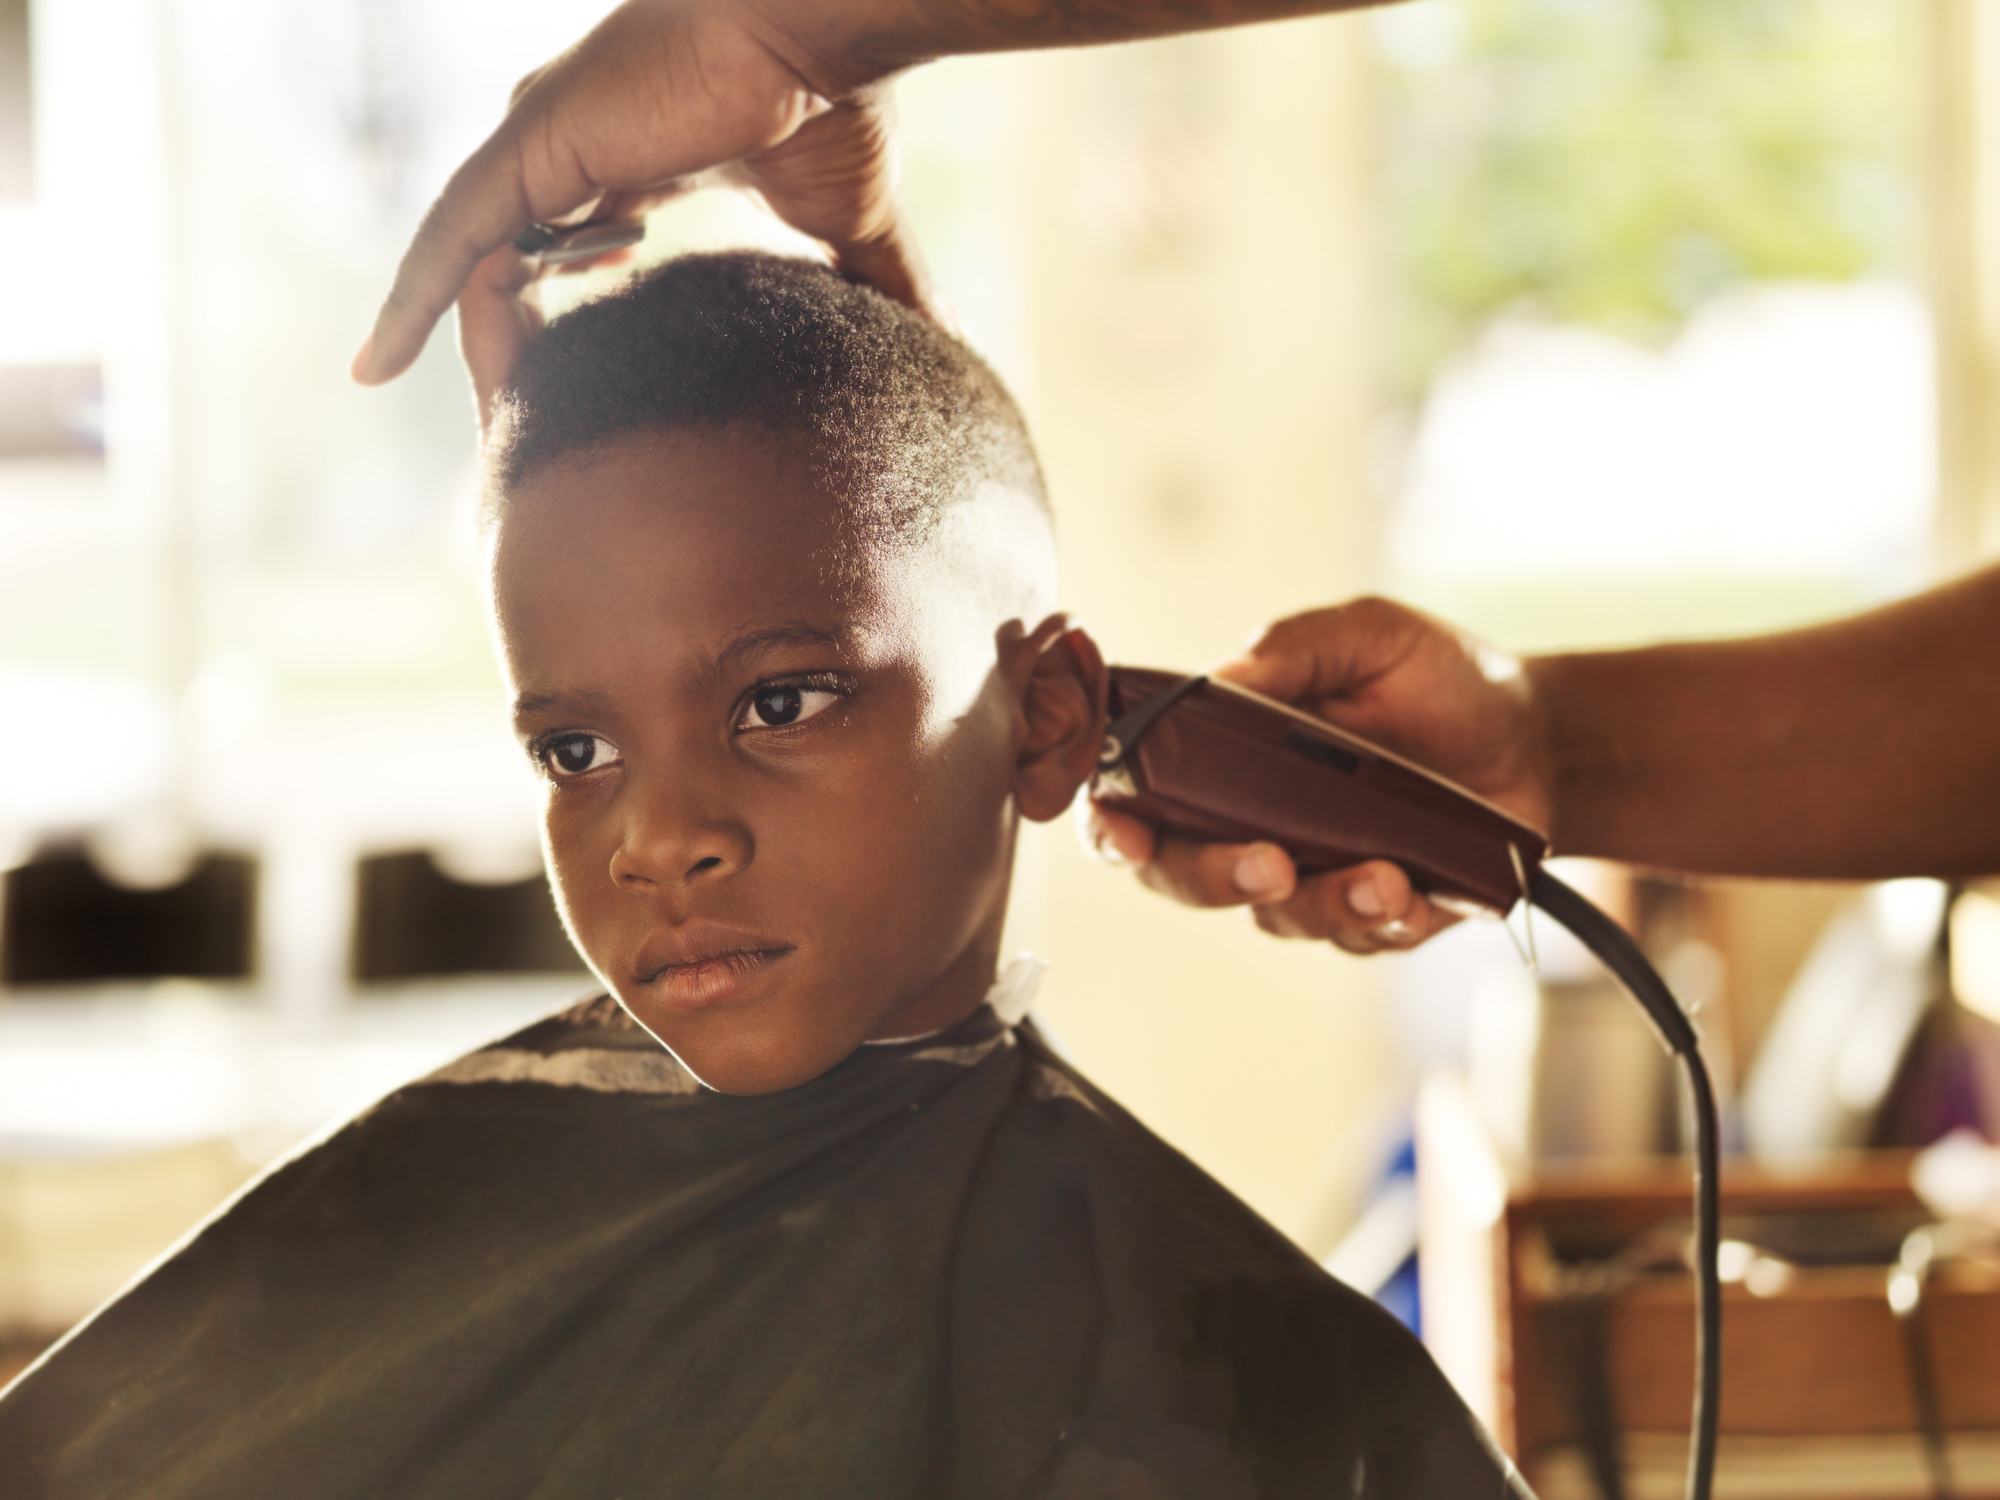 How Much Is Barber School?